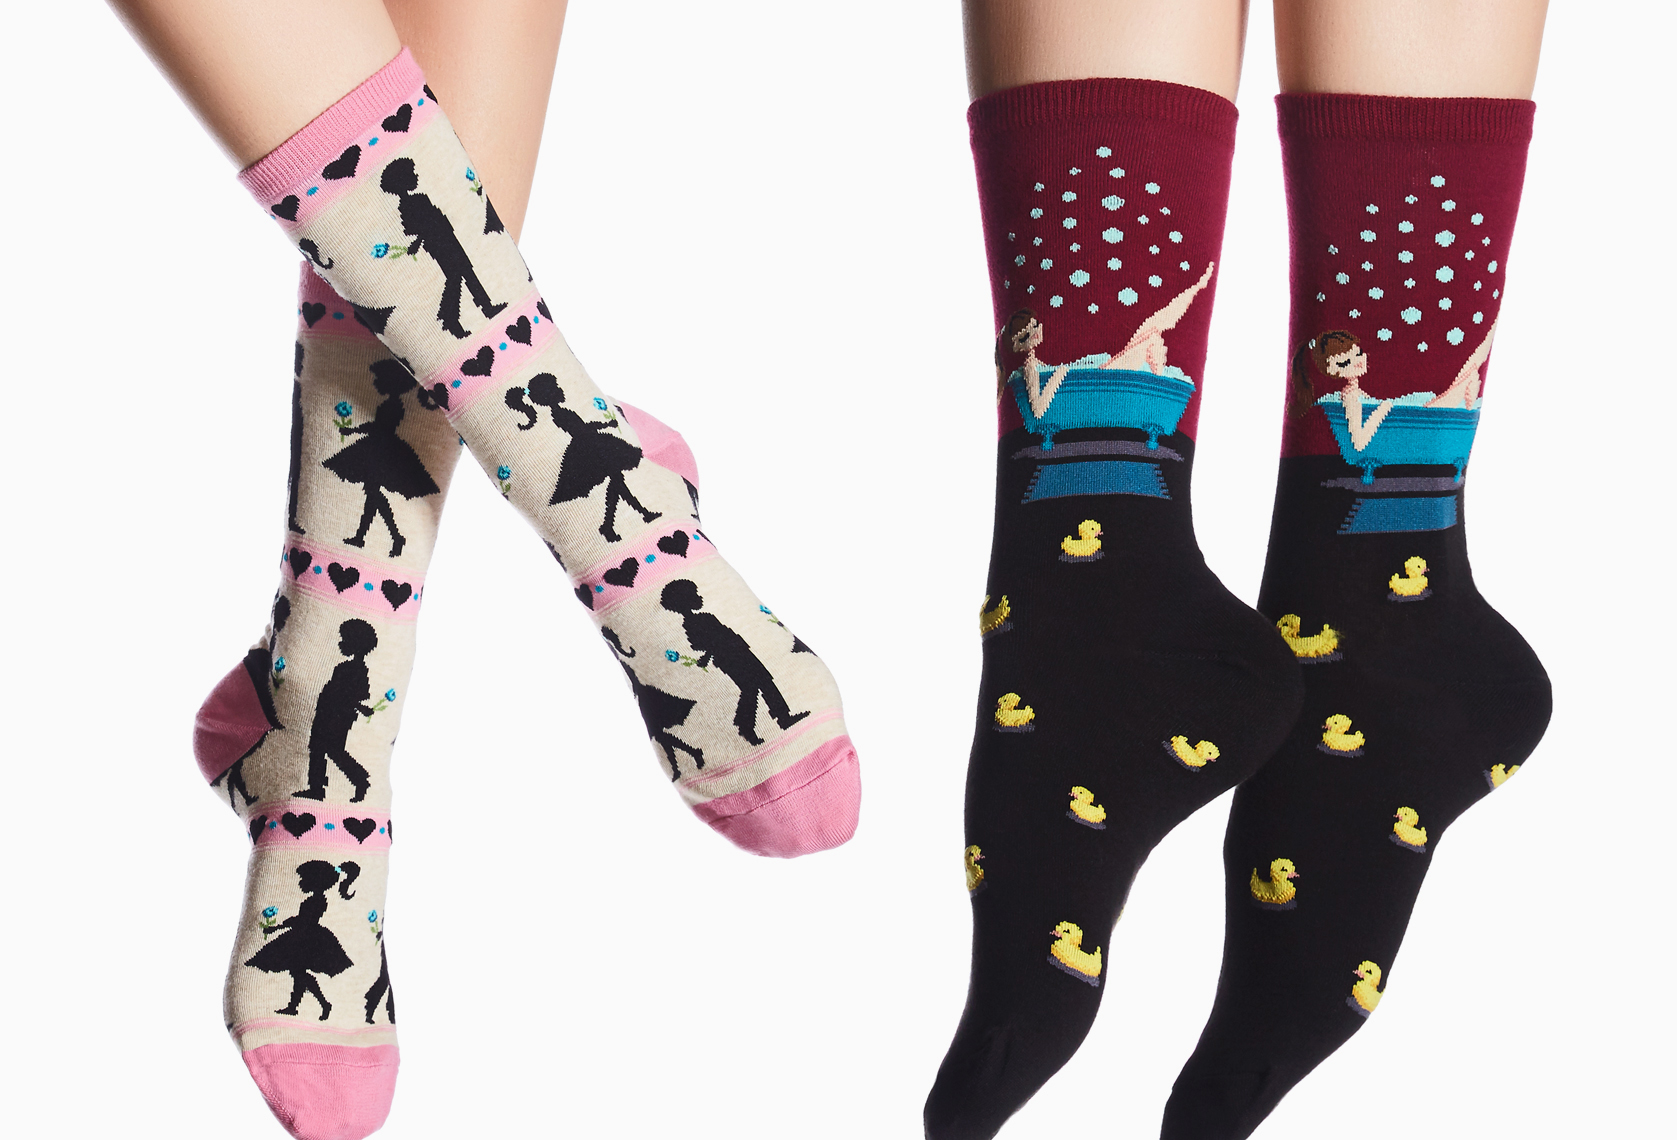 ParkerSteele_Socks_Product_Photography_Gallery_YoungLove